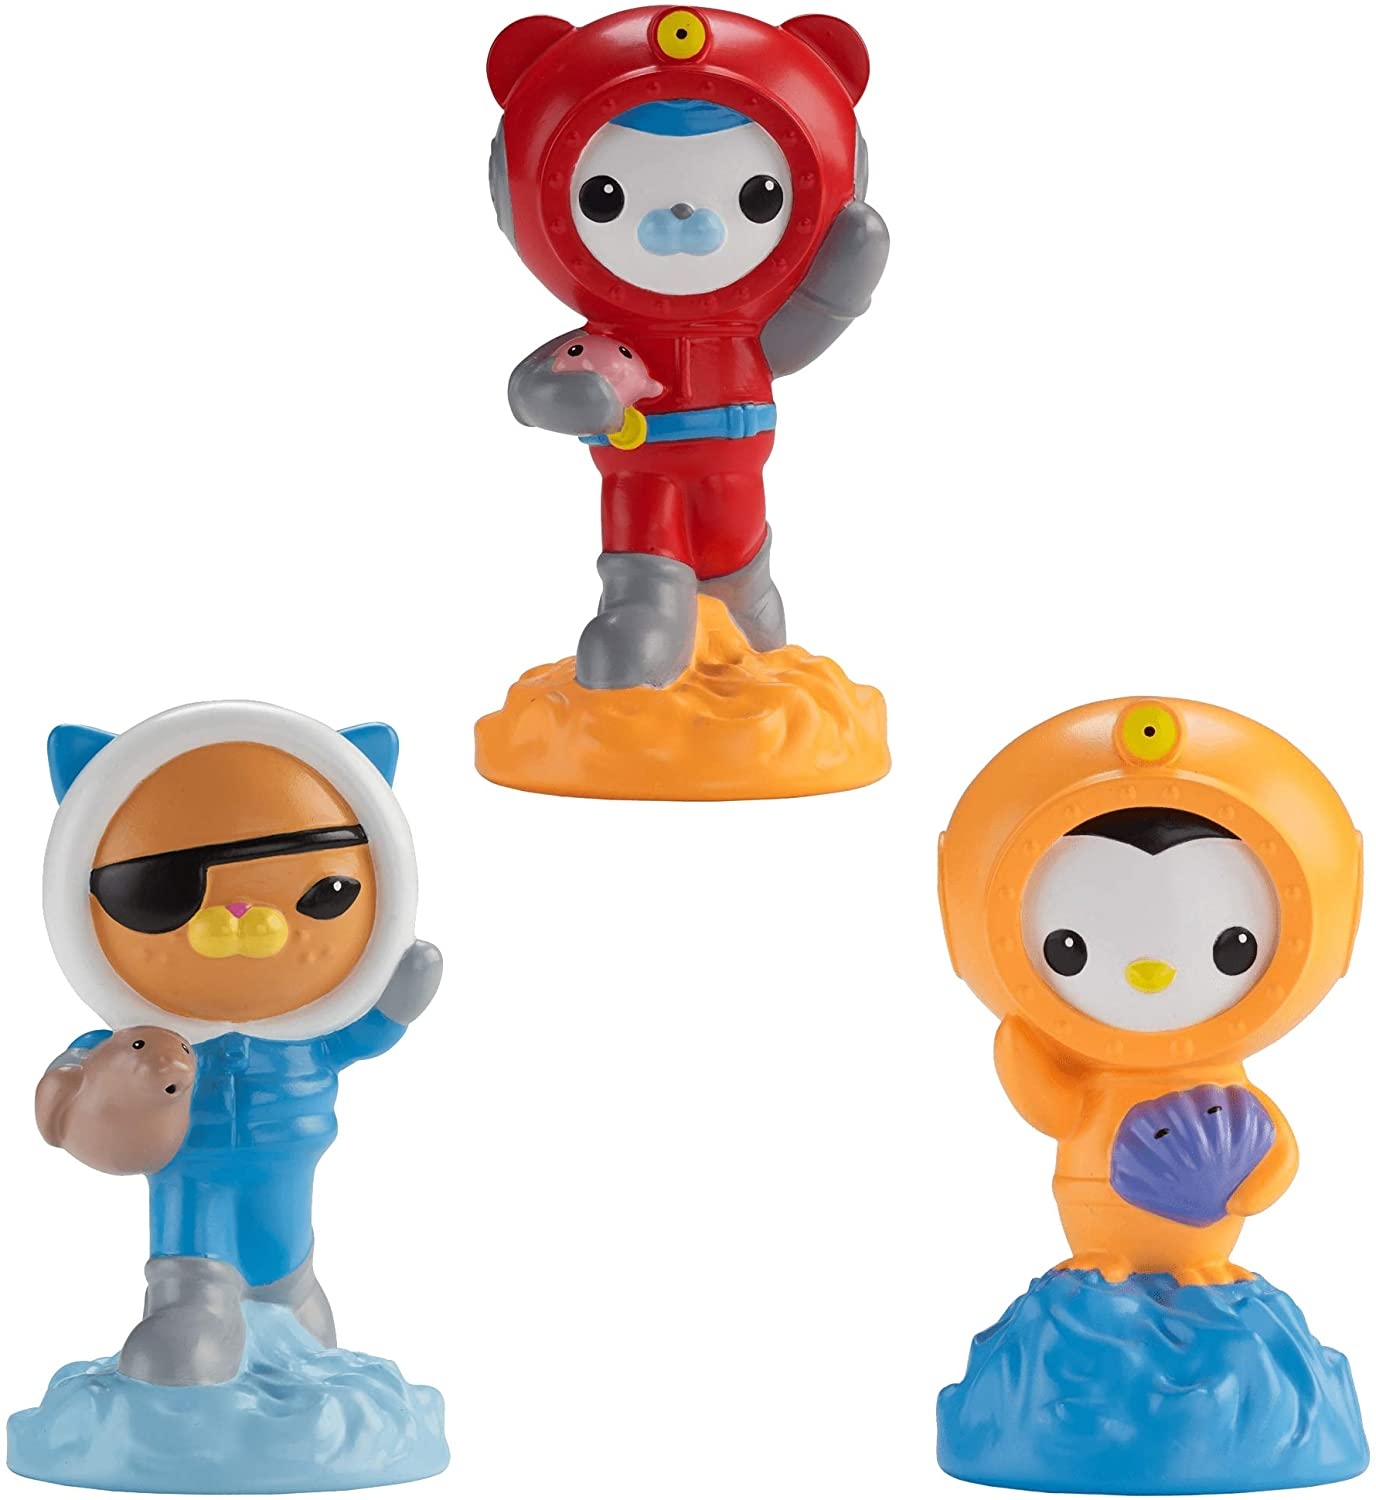 Bath Buddy Airplane Water Squirter Puzzled Inc.